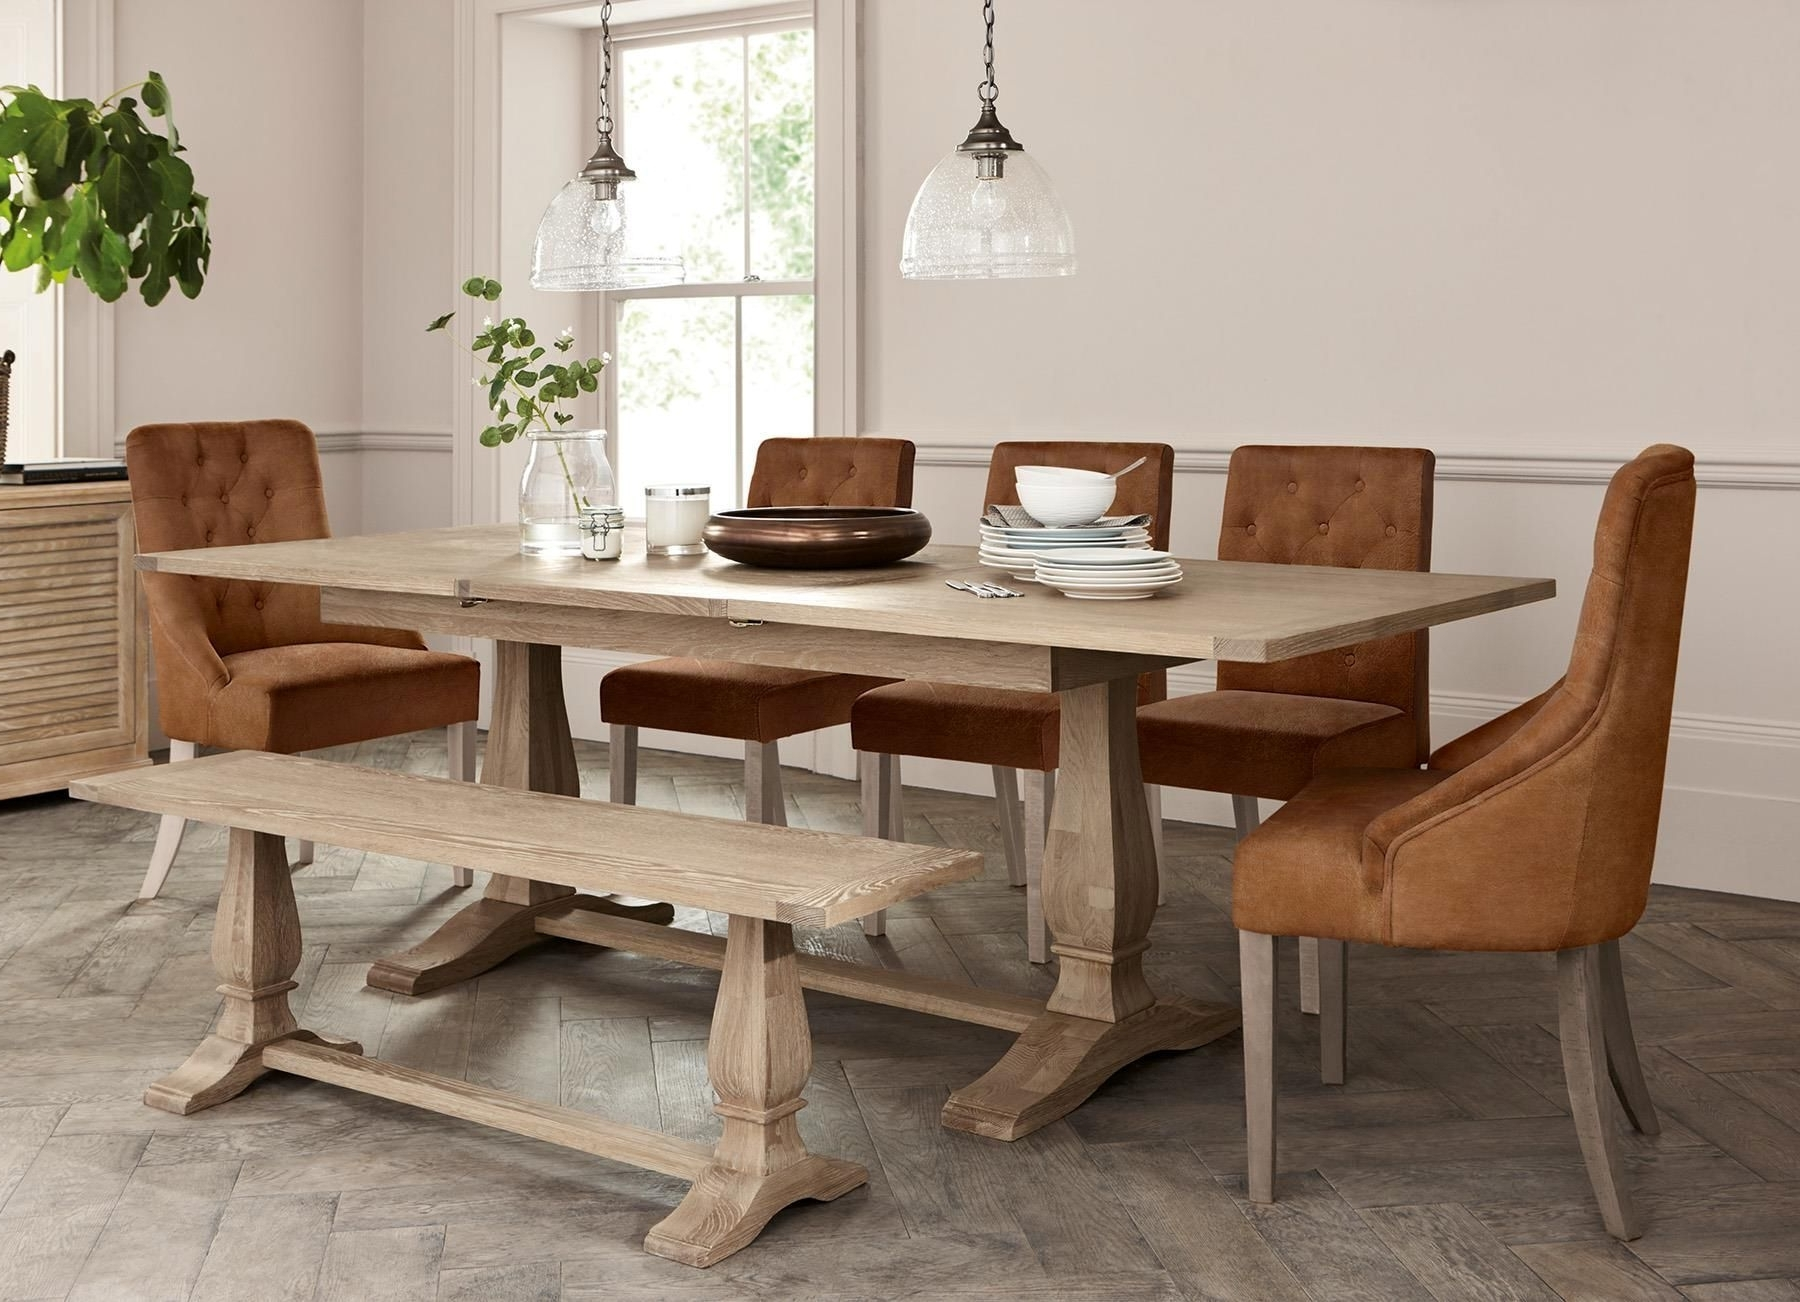 10 Seater Dining Tables And Chairs Within Most Recent Buy Hardwick 6 10 Seater Extending Dining Table From The Next Uk (Gallery 8 of 25)